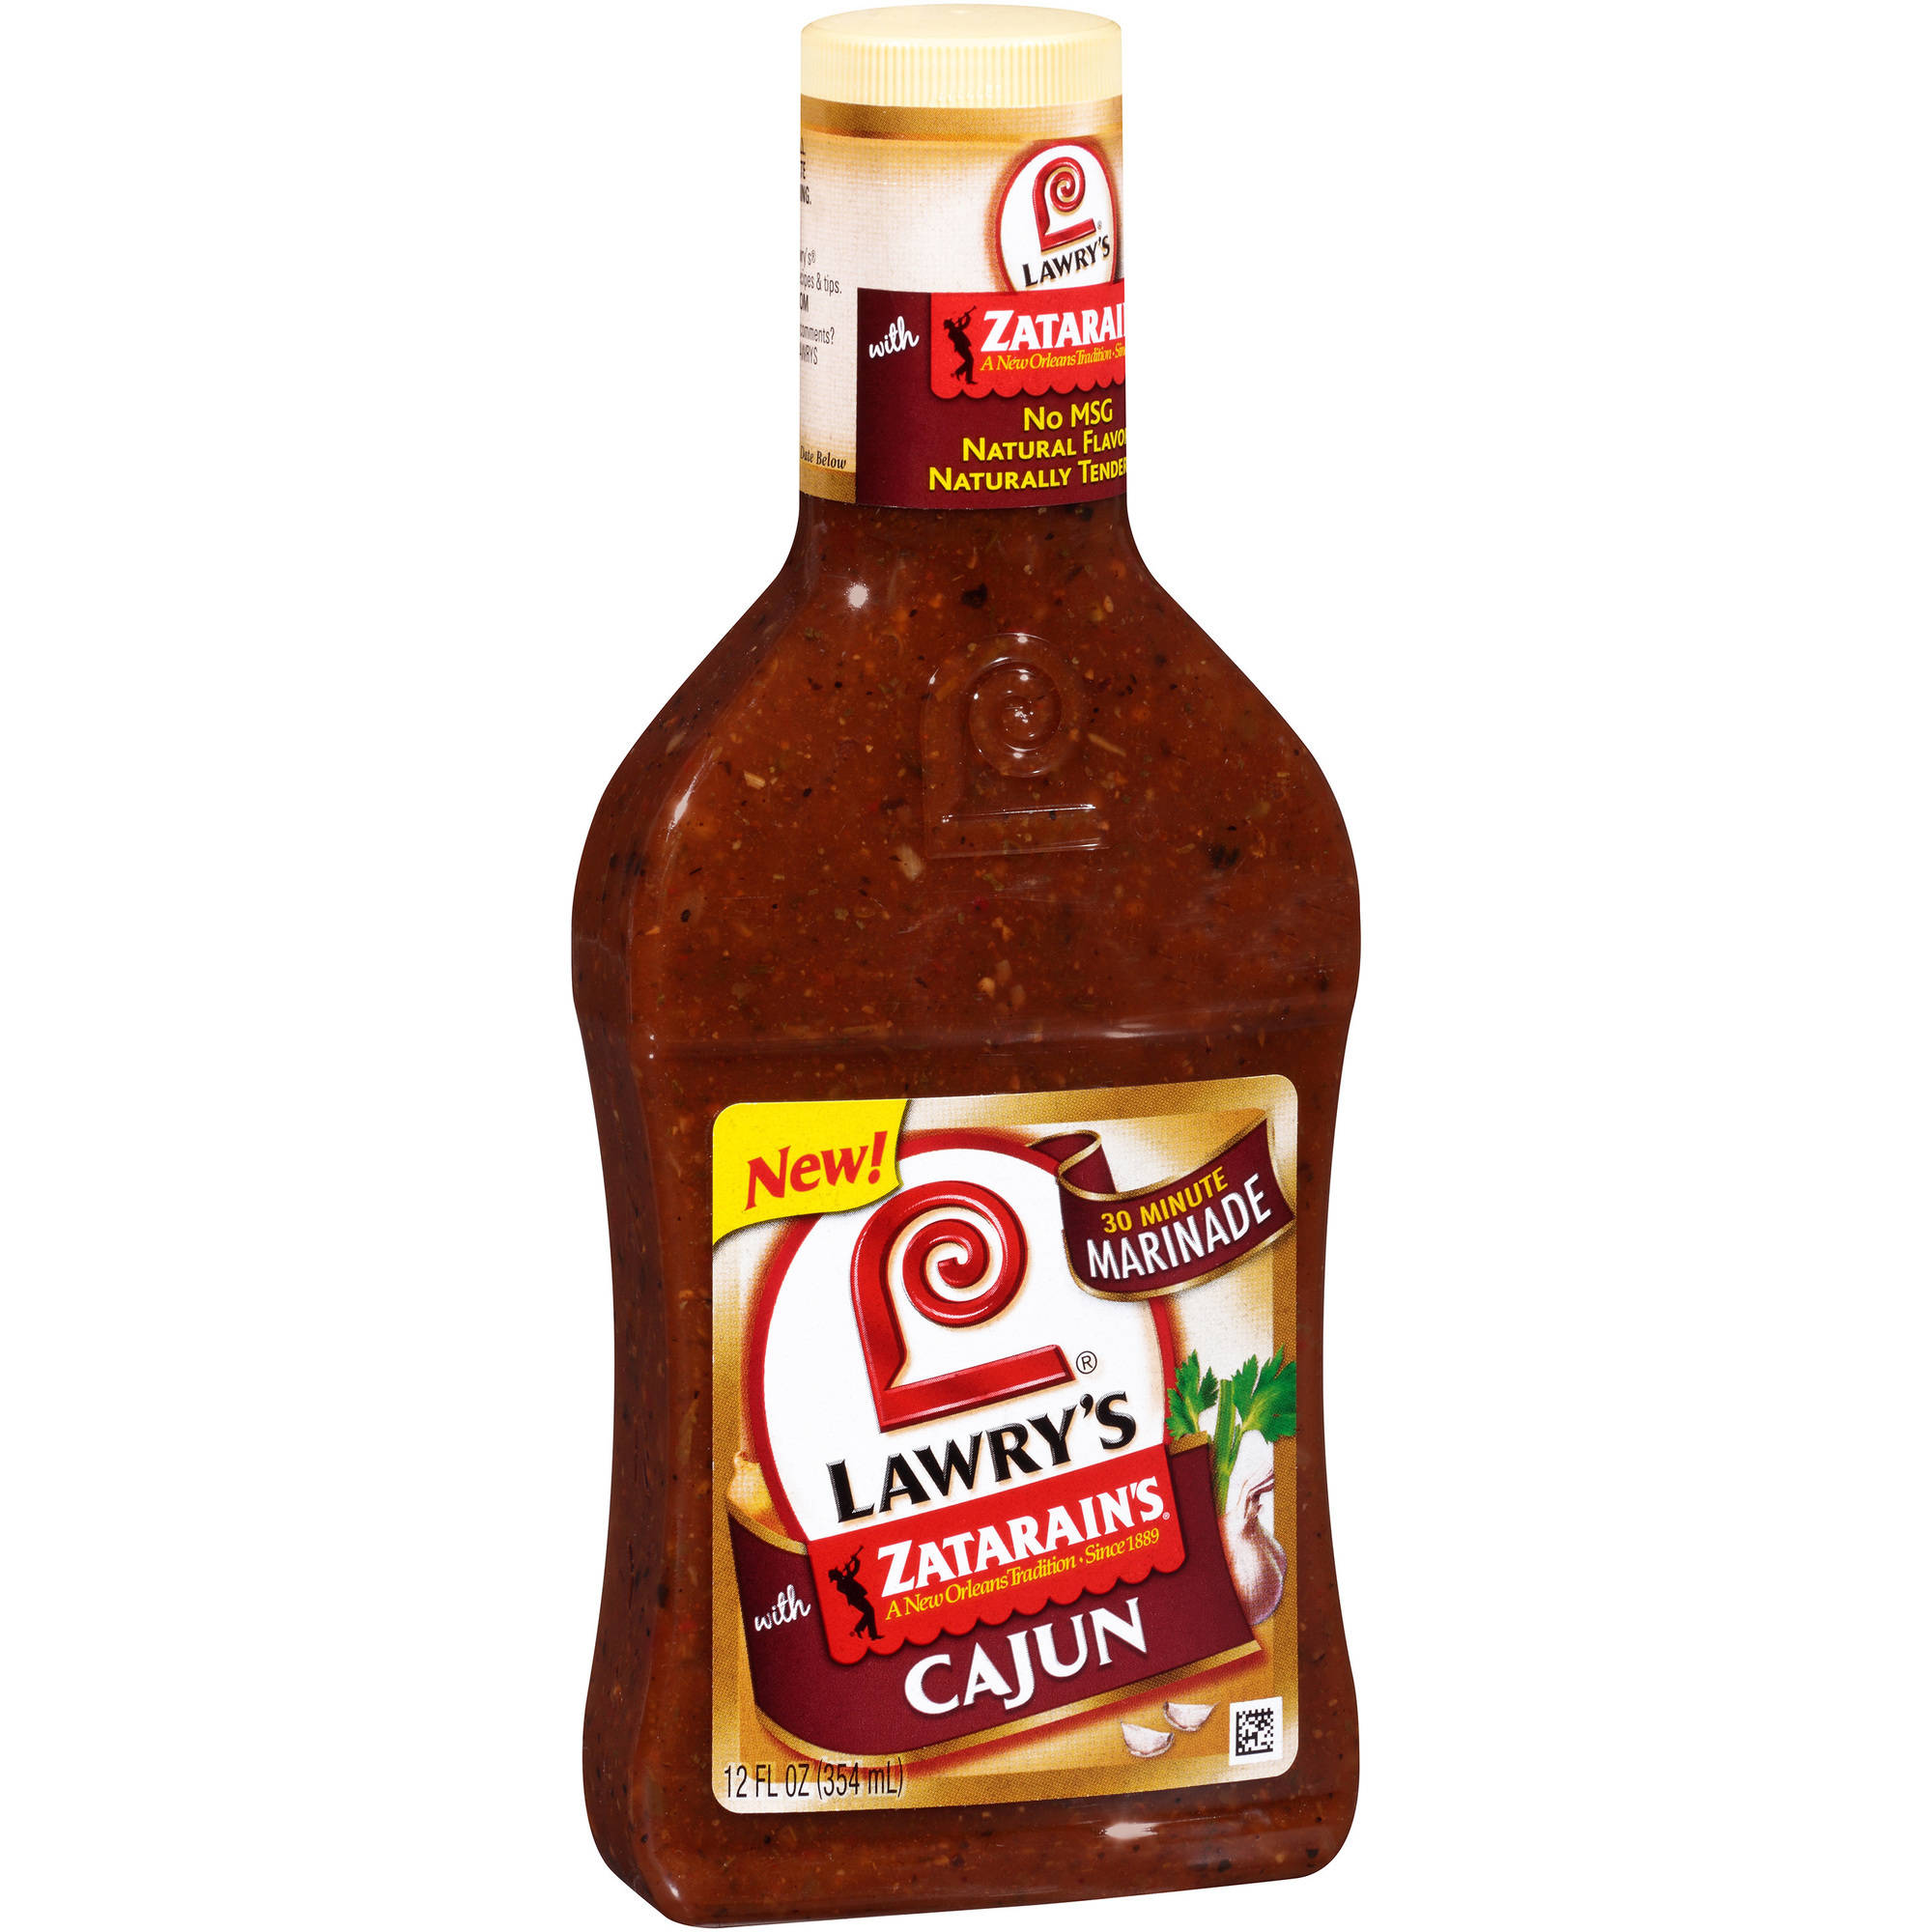 Lawry's Cajun 30 Minute Marinade with Zatarain's, 12 fl oz